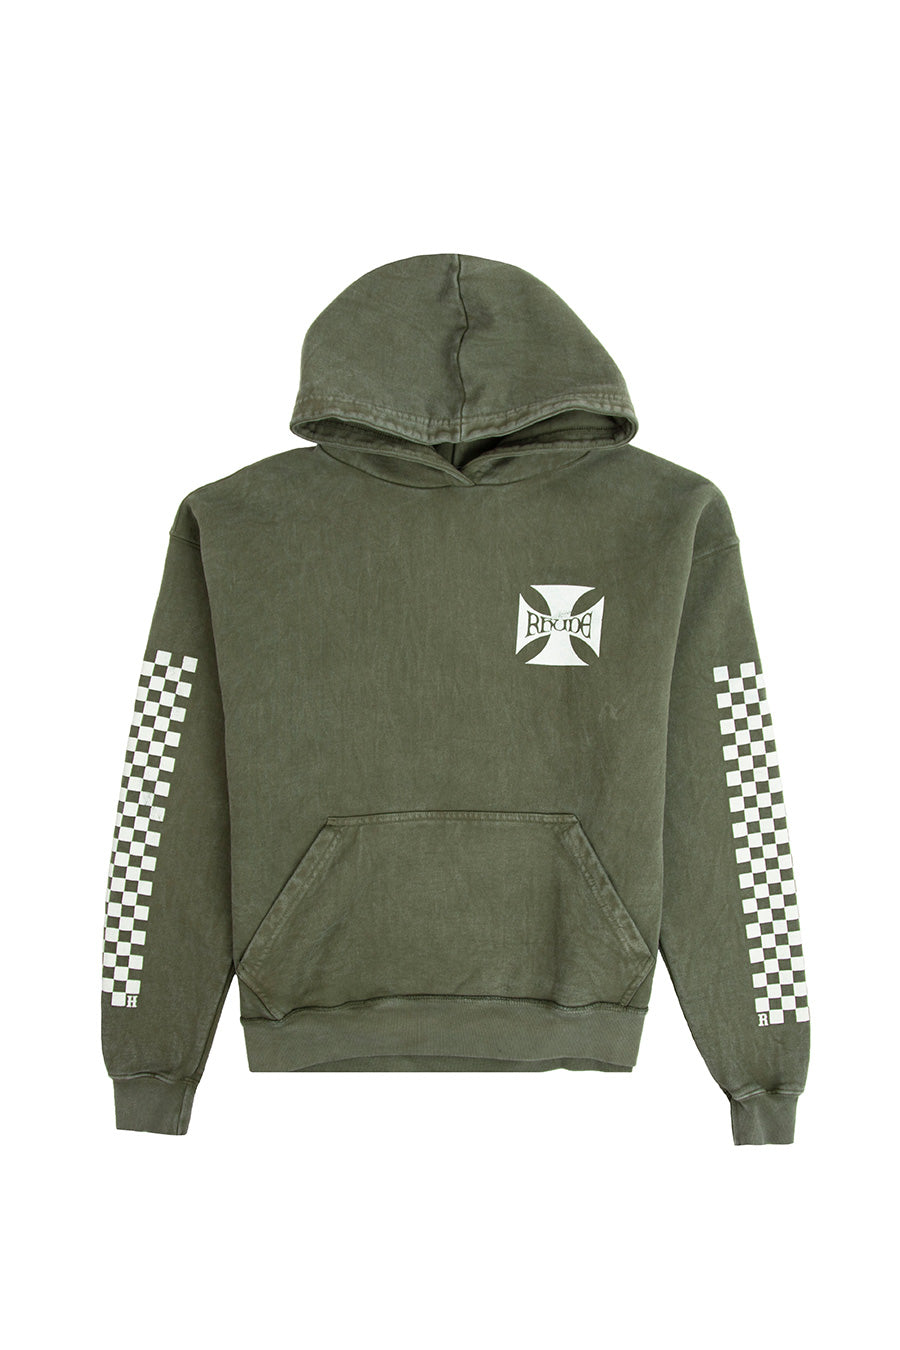 Rhude - Olive Classic Checkers Hoodie | 1032 SPACE